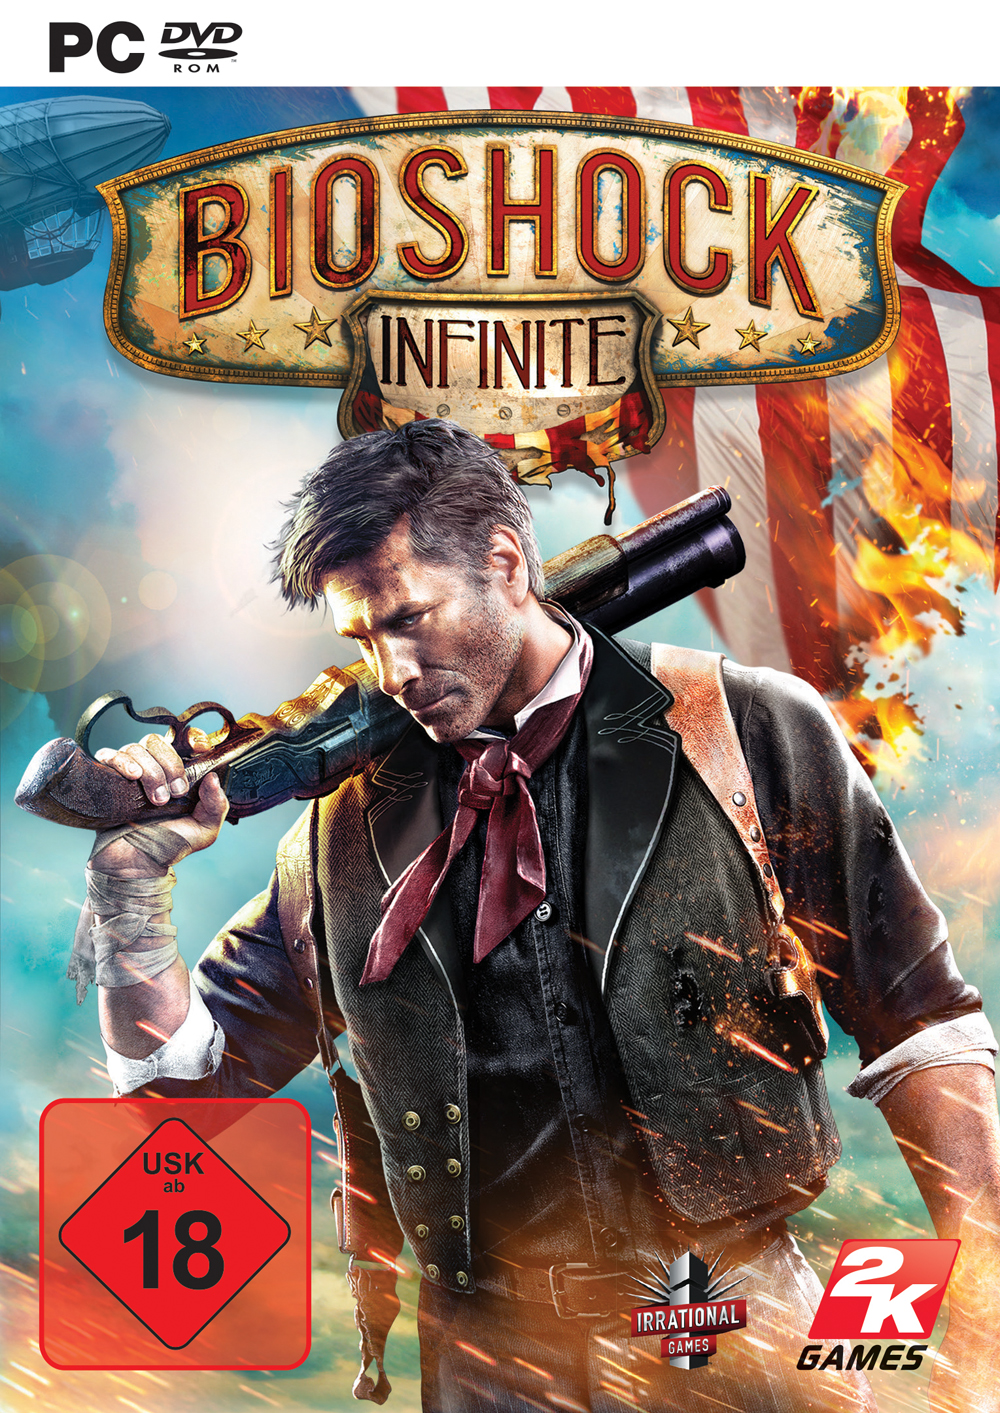 BioShock Infinite - Ein Review